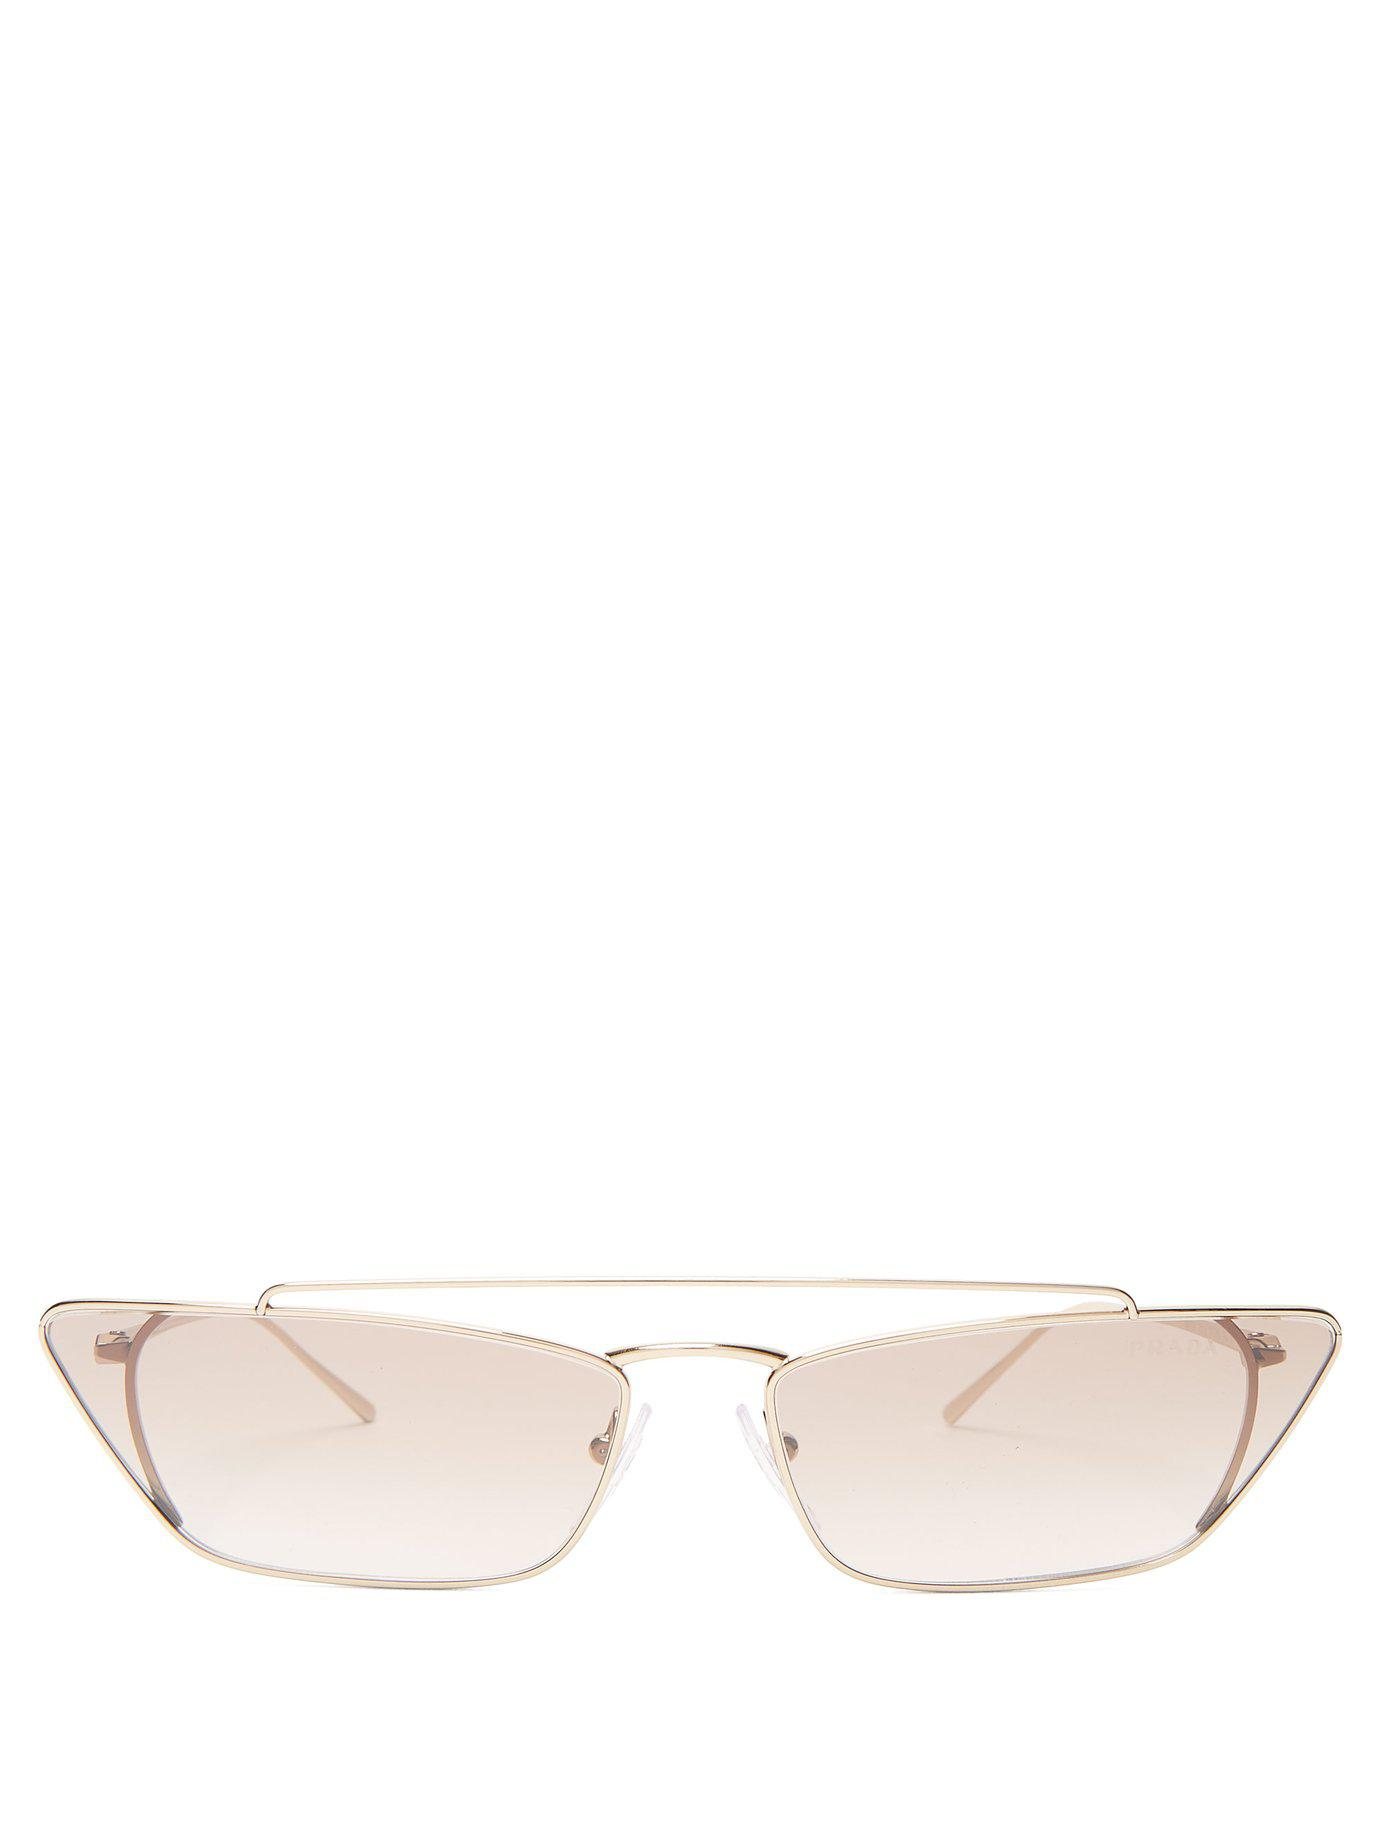 1ad5b23ebe84 Lyst - Prada Ultravox Rectangular Frame Metal Sunglasses in Pink